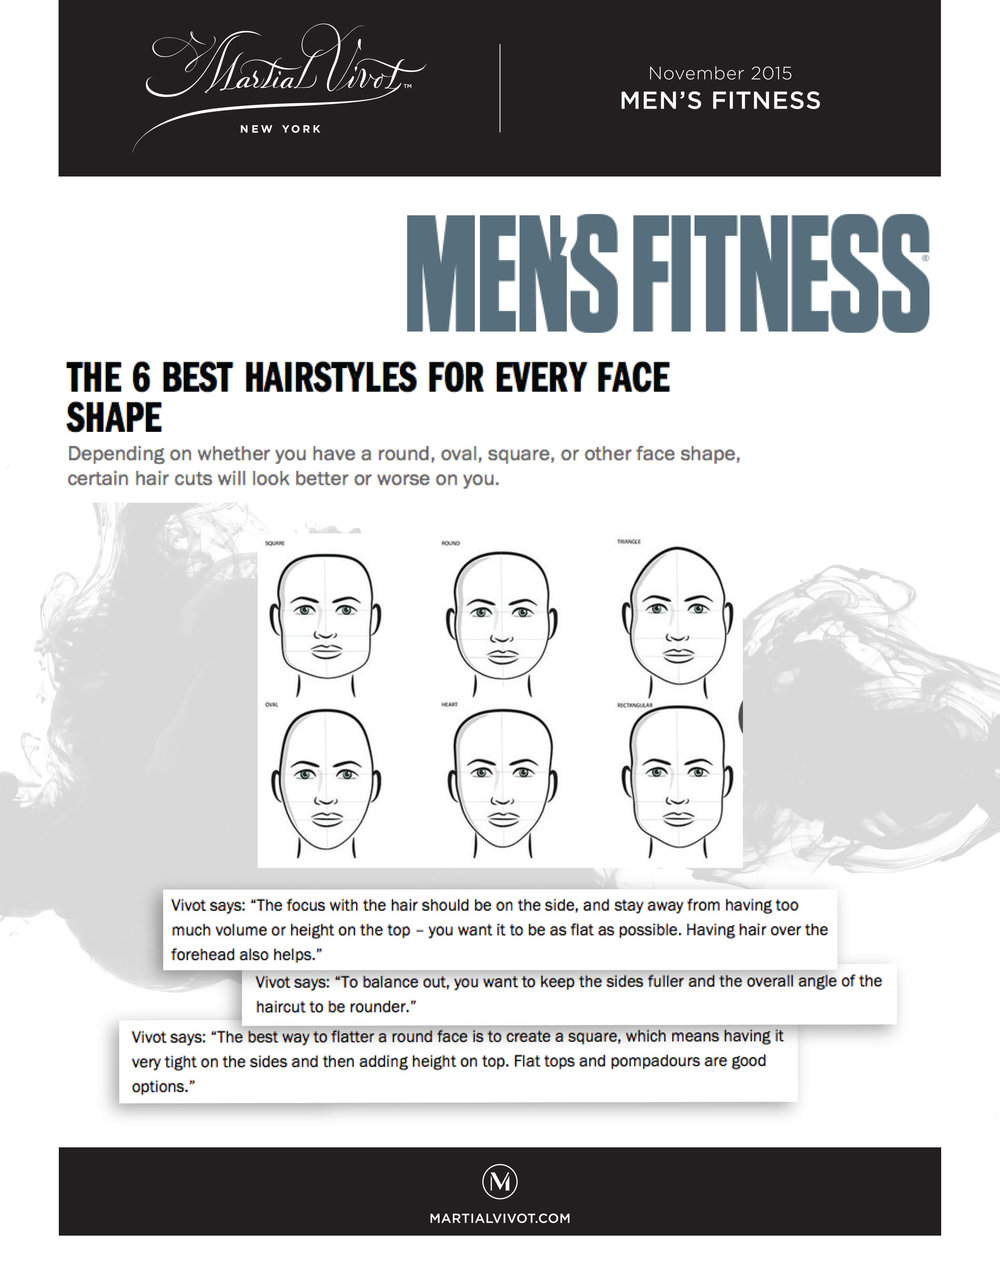 MensFitness Nov15.jpg